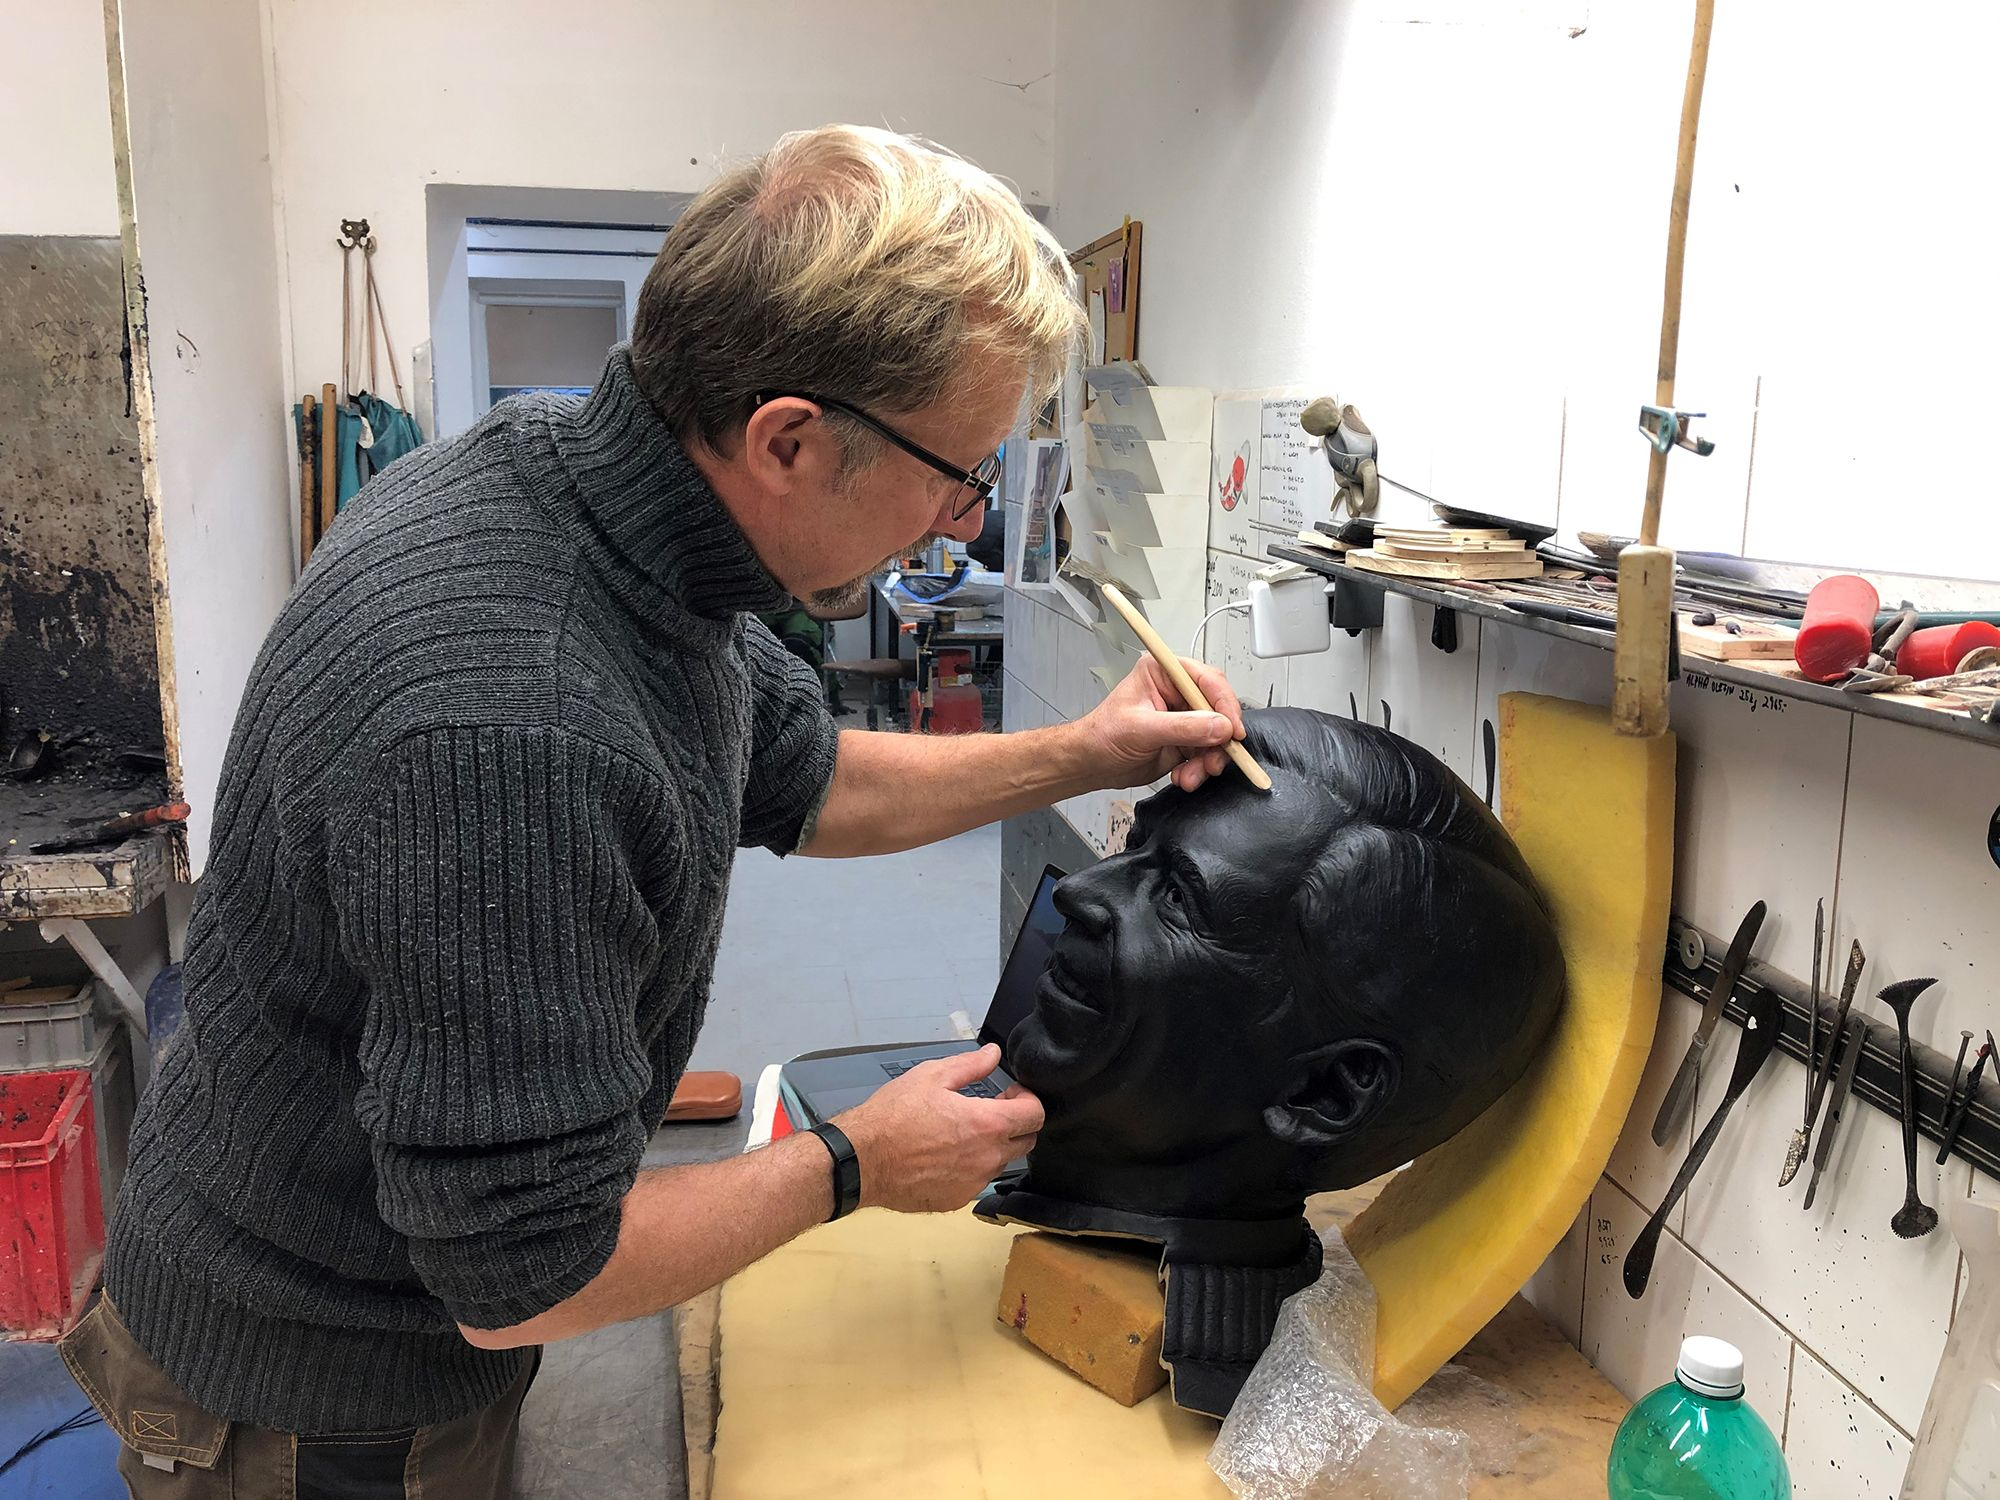 Artist Paul Day working on the head portion of the sculpture of Fred Rogers.